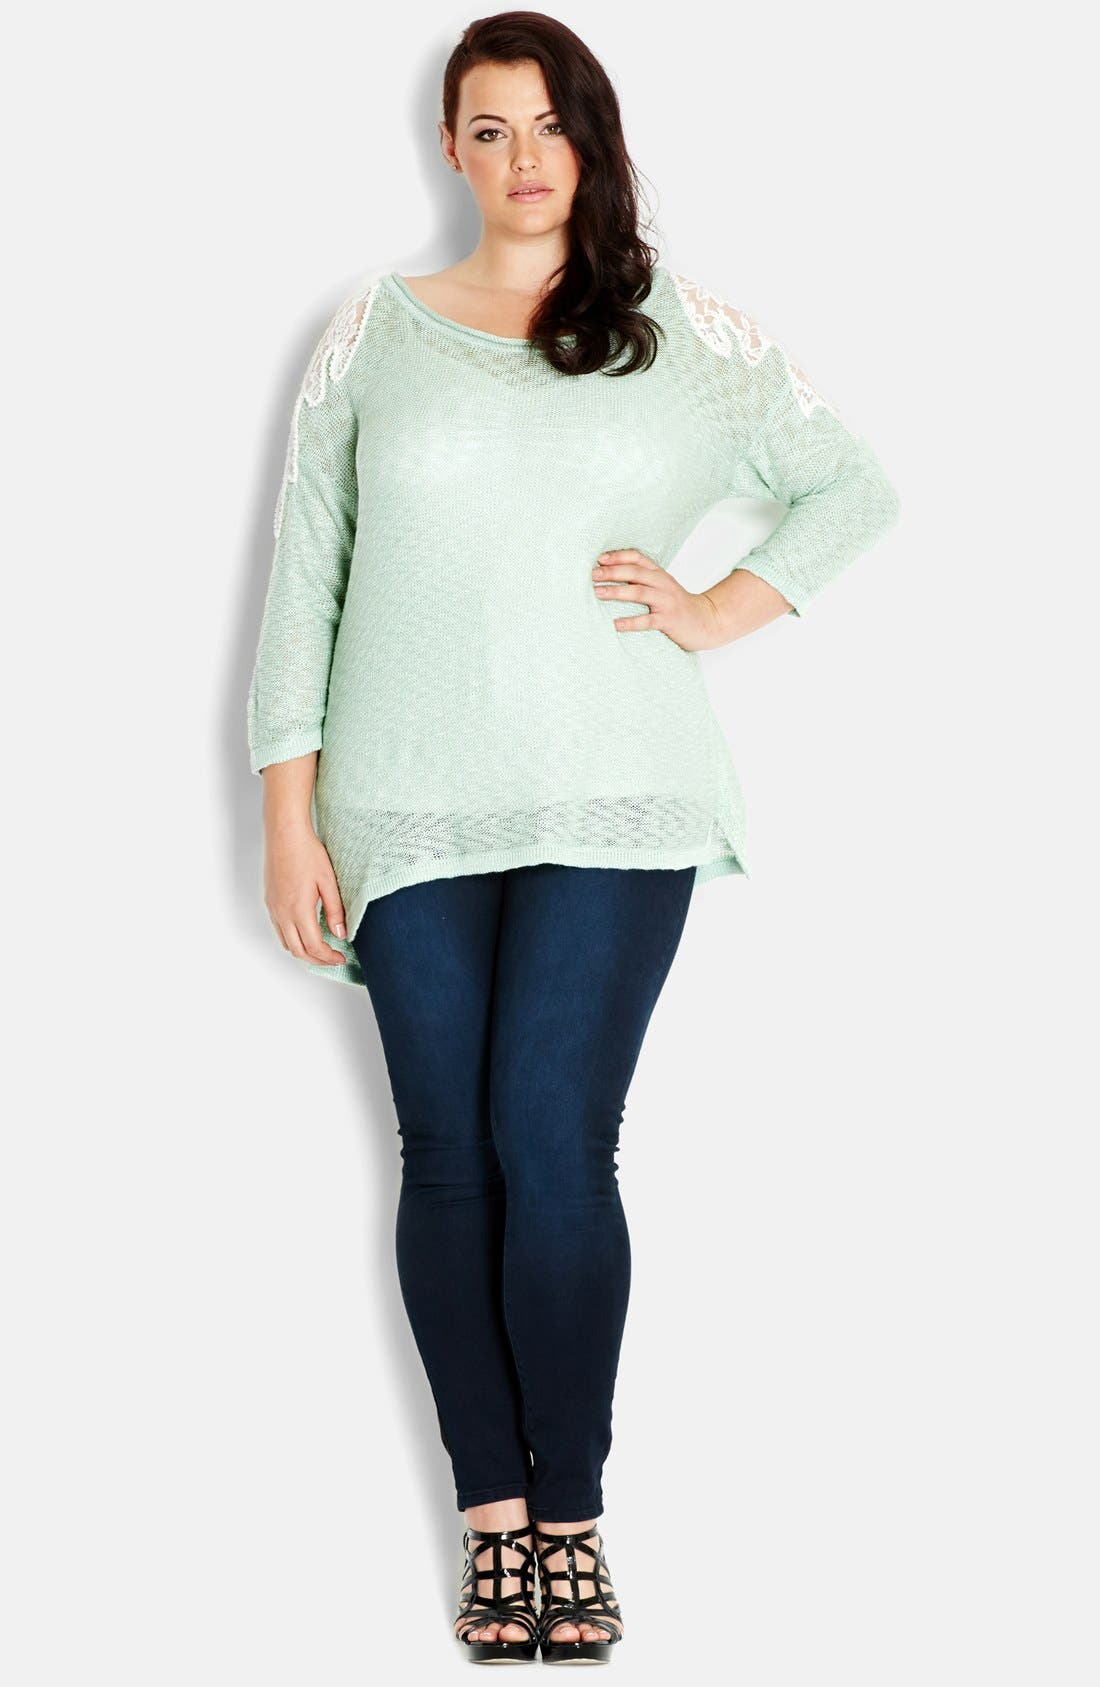 Alternate Image 1 Selected - City Chic 'Precious Pearl' Lace Inset Sweater (Plus Size)